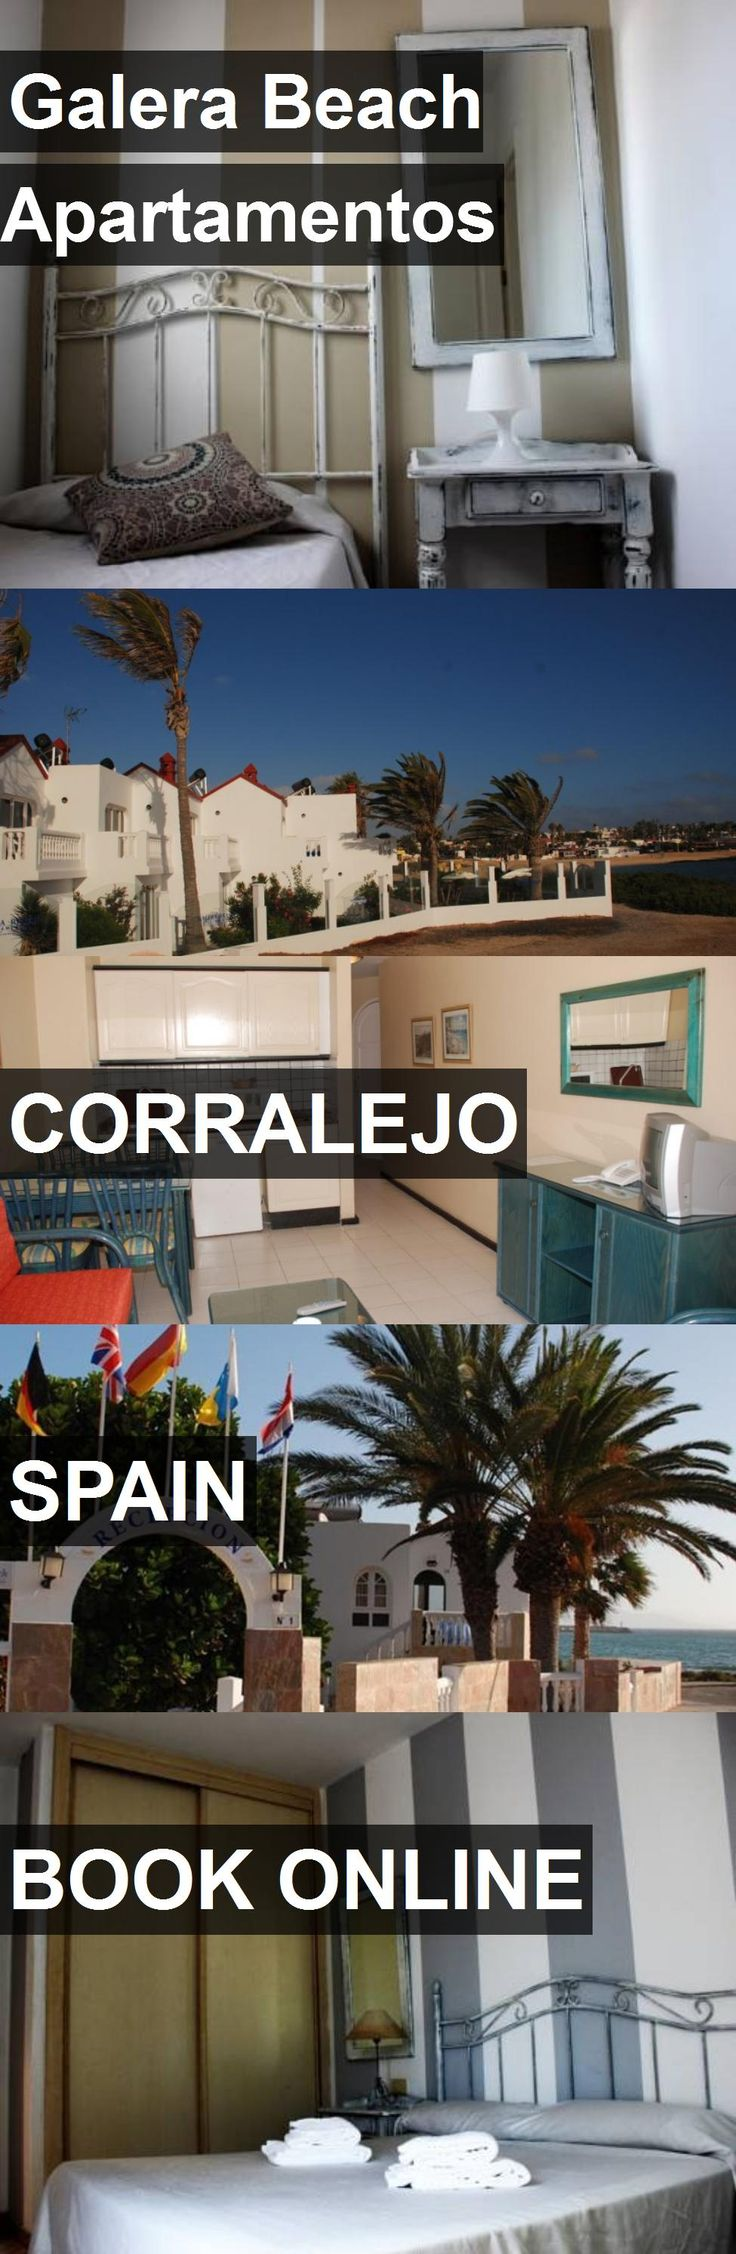 Hotel Galera Beach Apartamentos in Corralejo, Spain. For more information, photos, reviews and best prices please follow the link. #Spain #Corralejo #travel #vacation #hotel